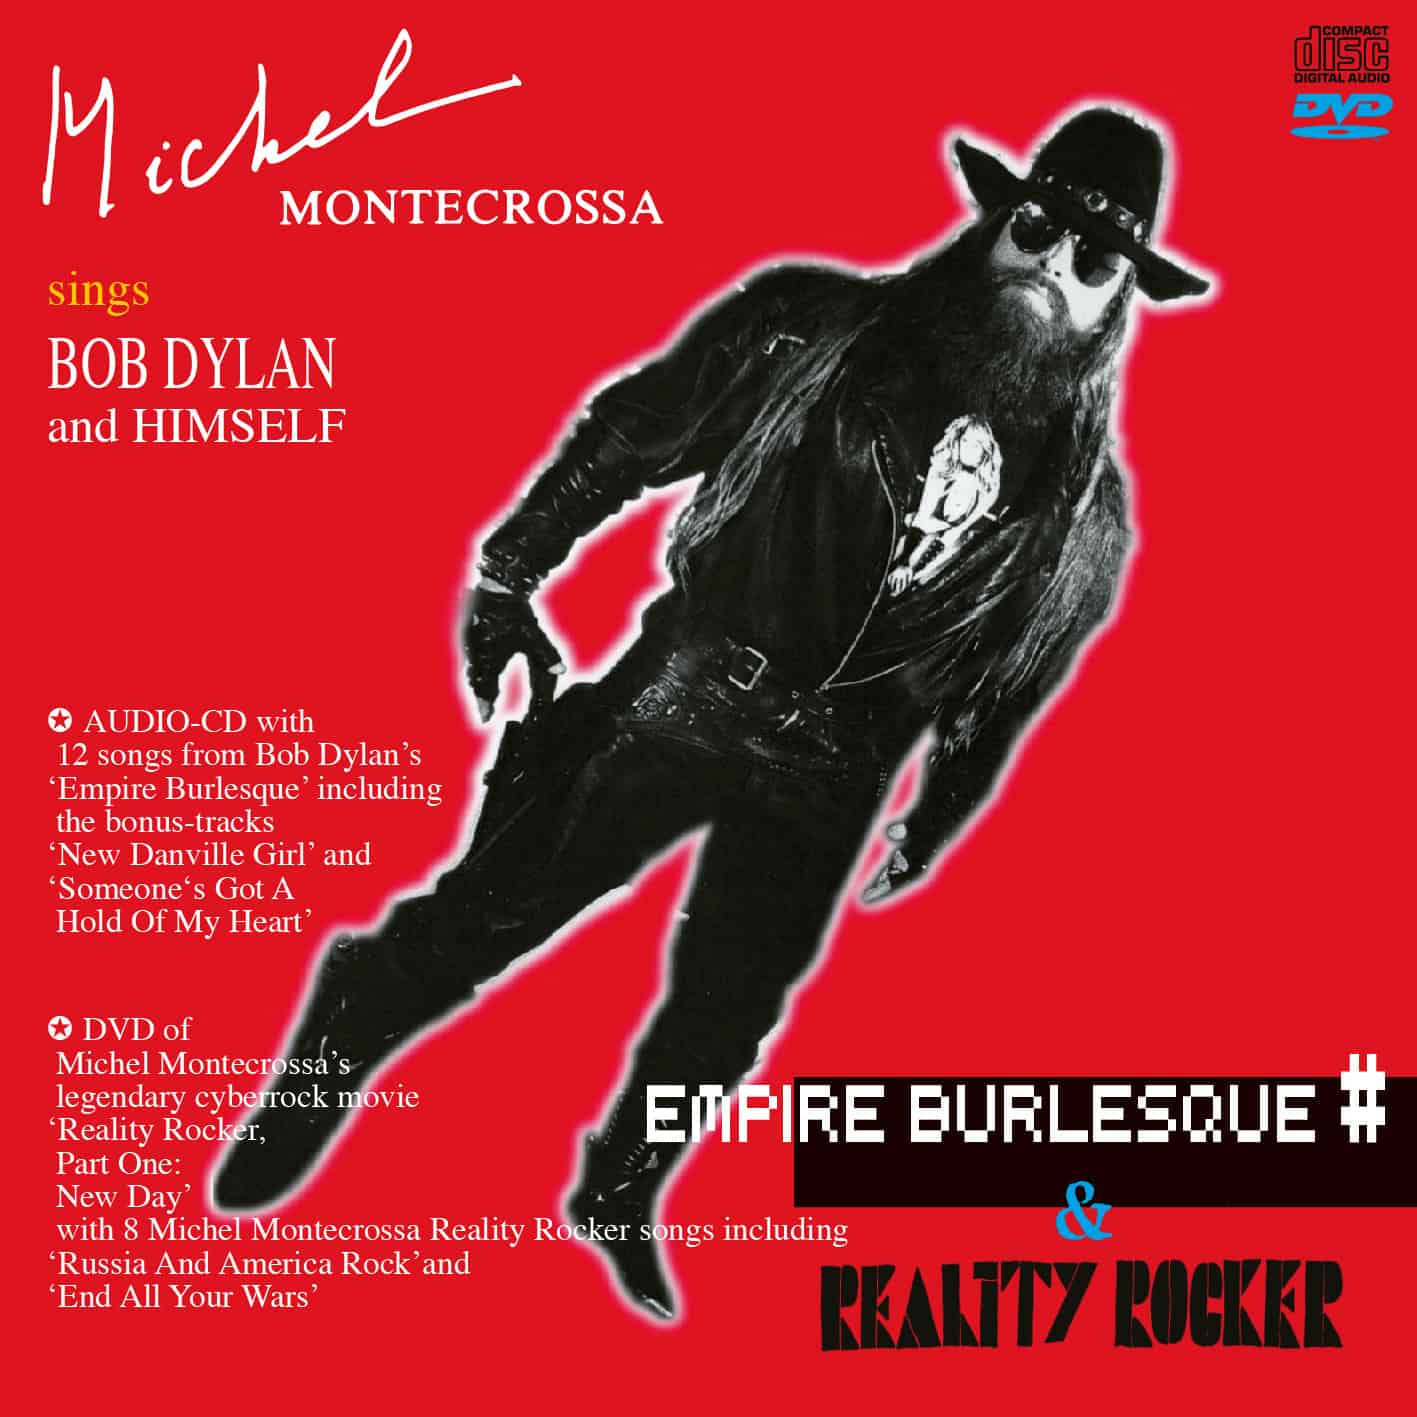 Empire Burlesque # & Reality Rocker